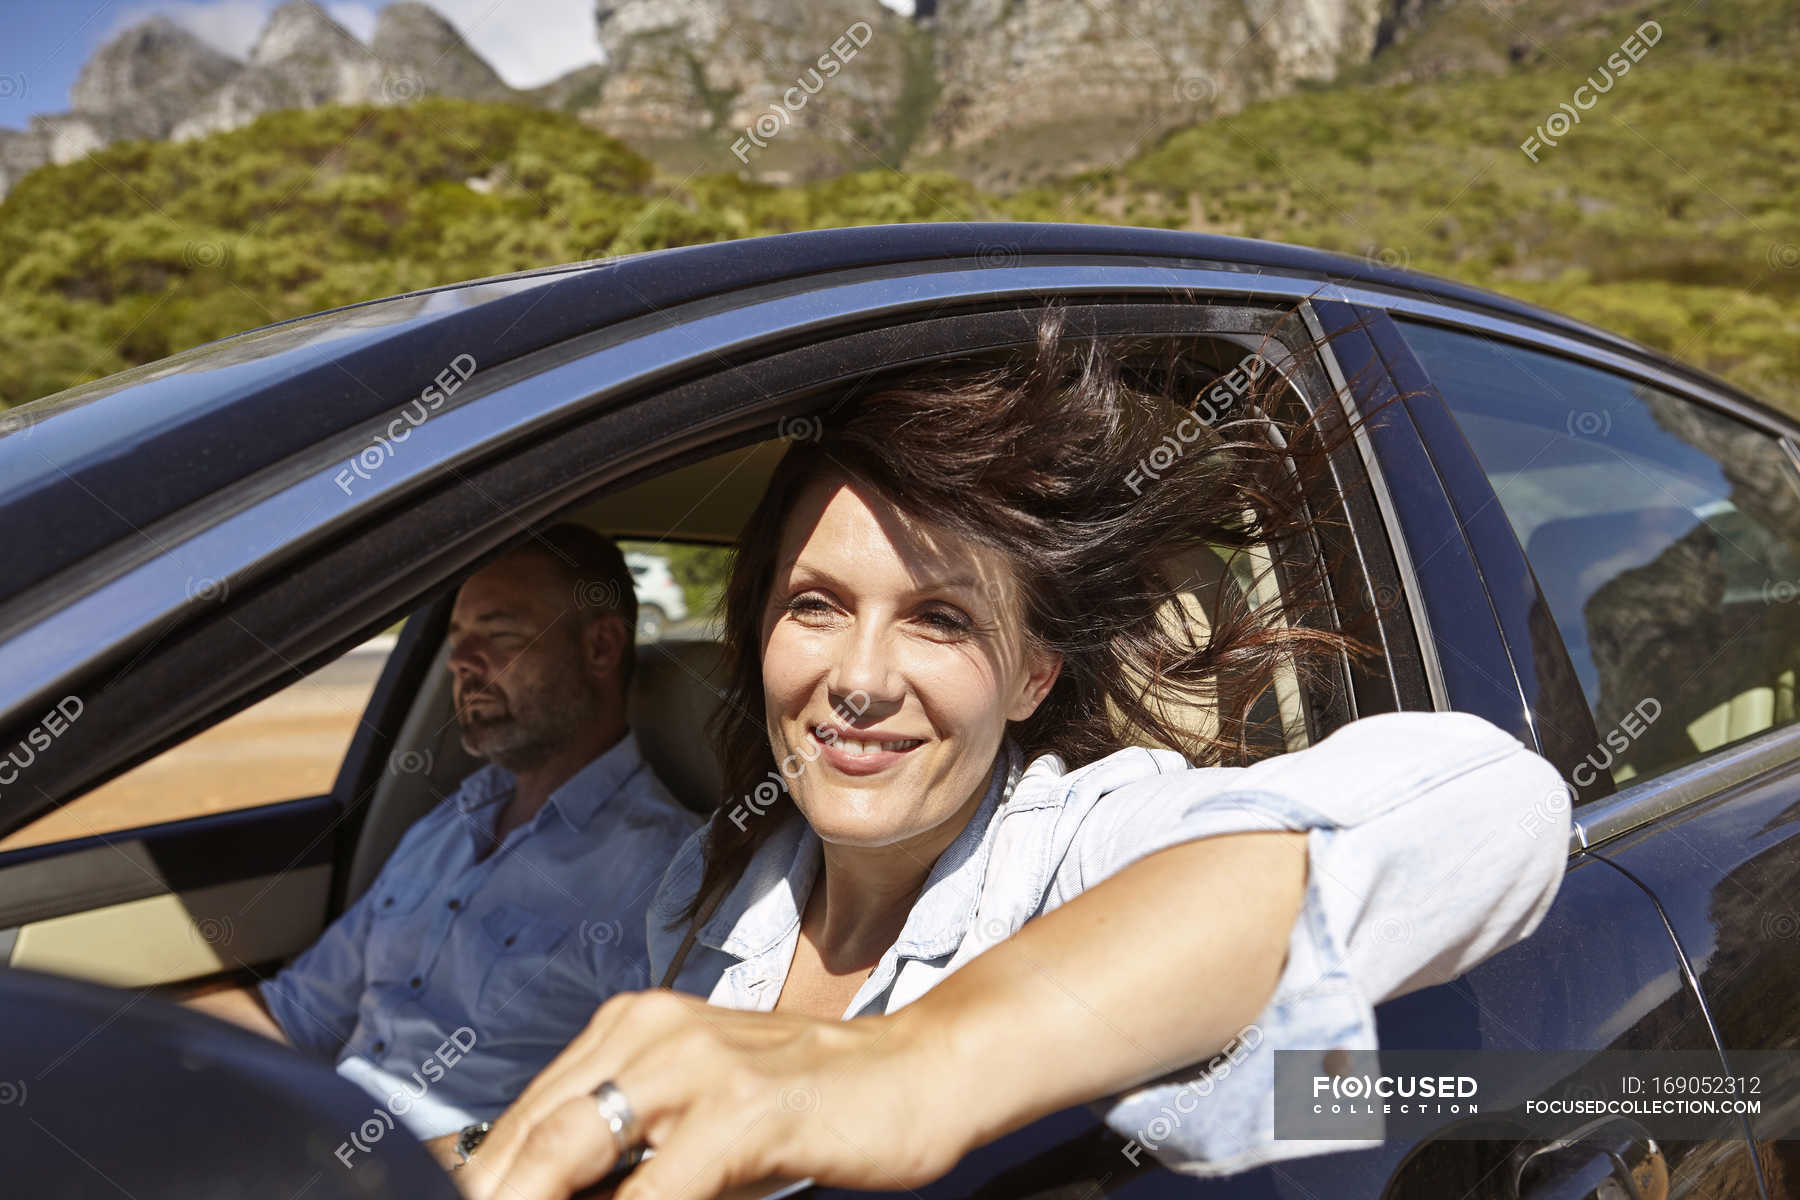 Couple In Car Driving Along Rural Road Woman Leaning On Open Window Cape Town South Africa Stock Photo 169052312